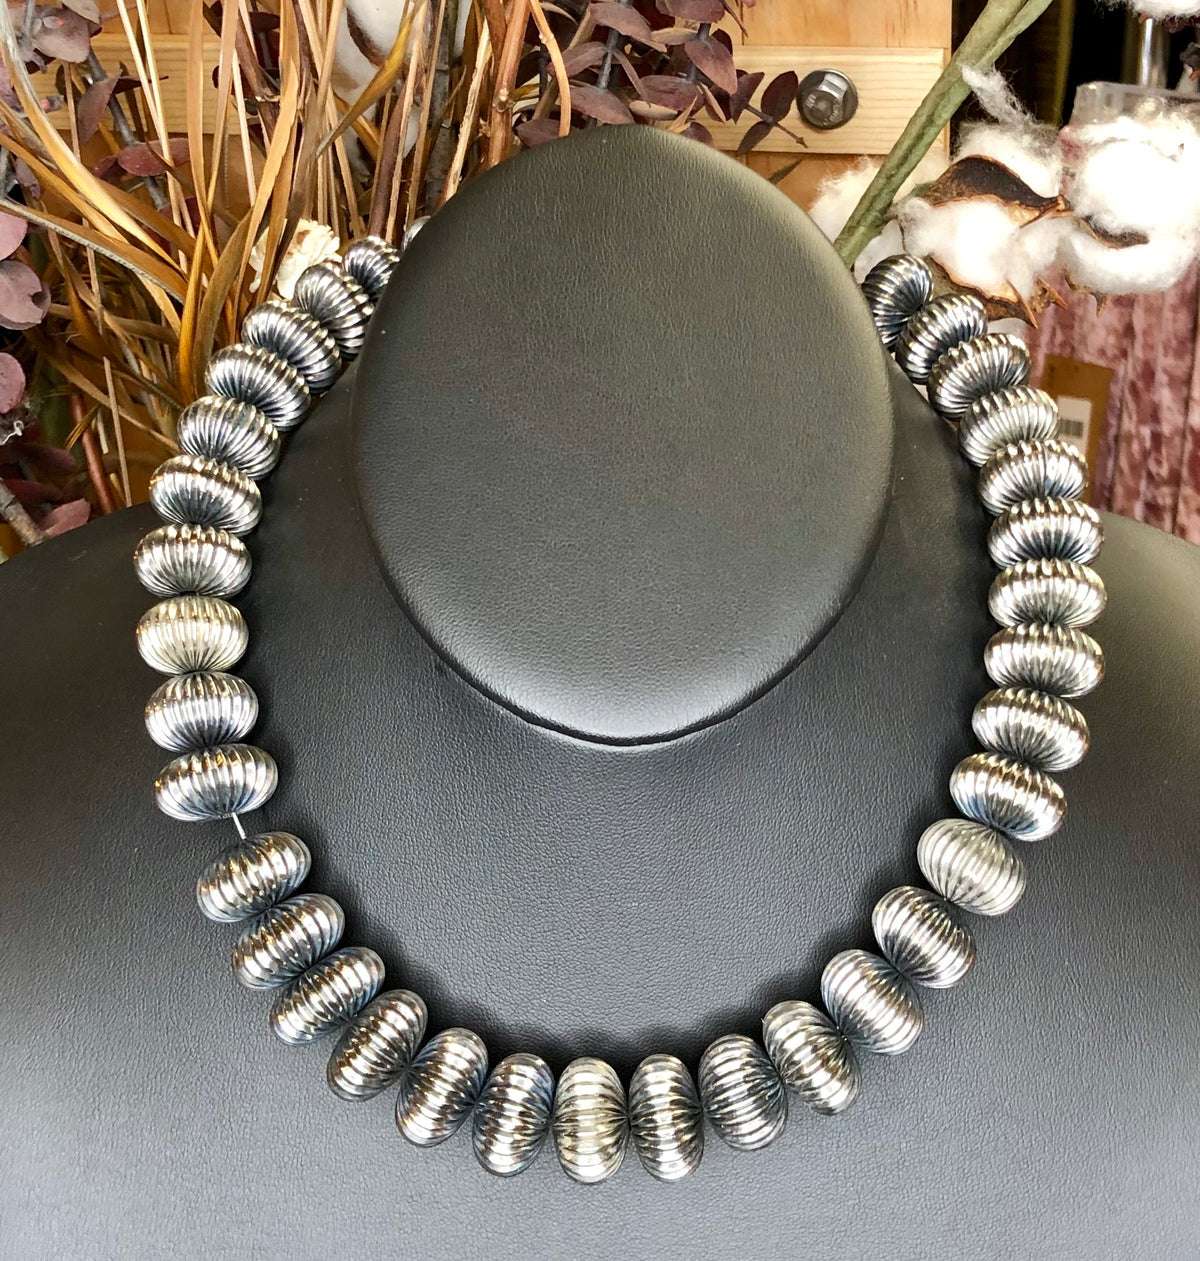 West Coast Cowgirl Choker Necklace of Large Corrugated Sterling Silver Plated Beads